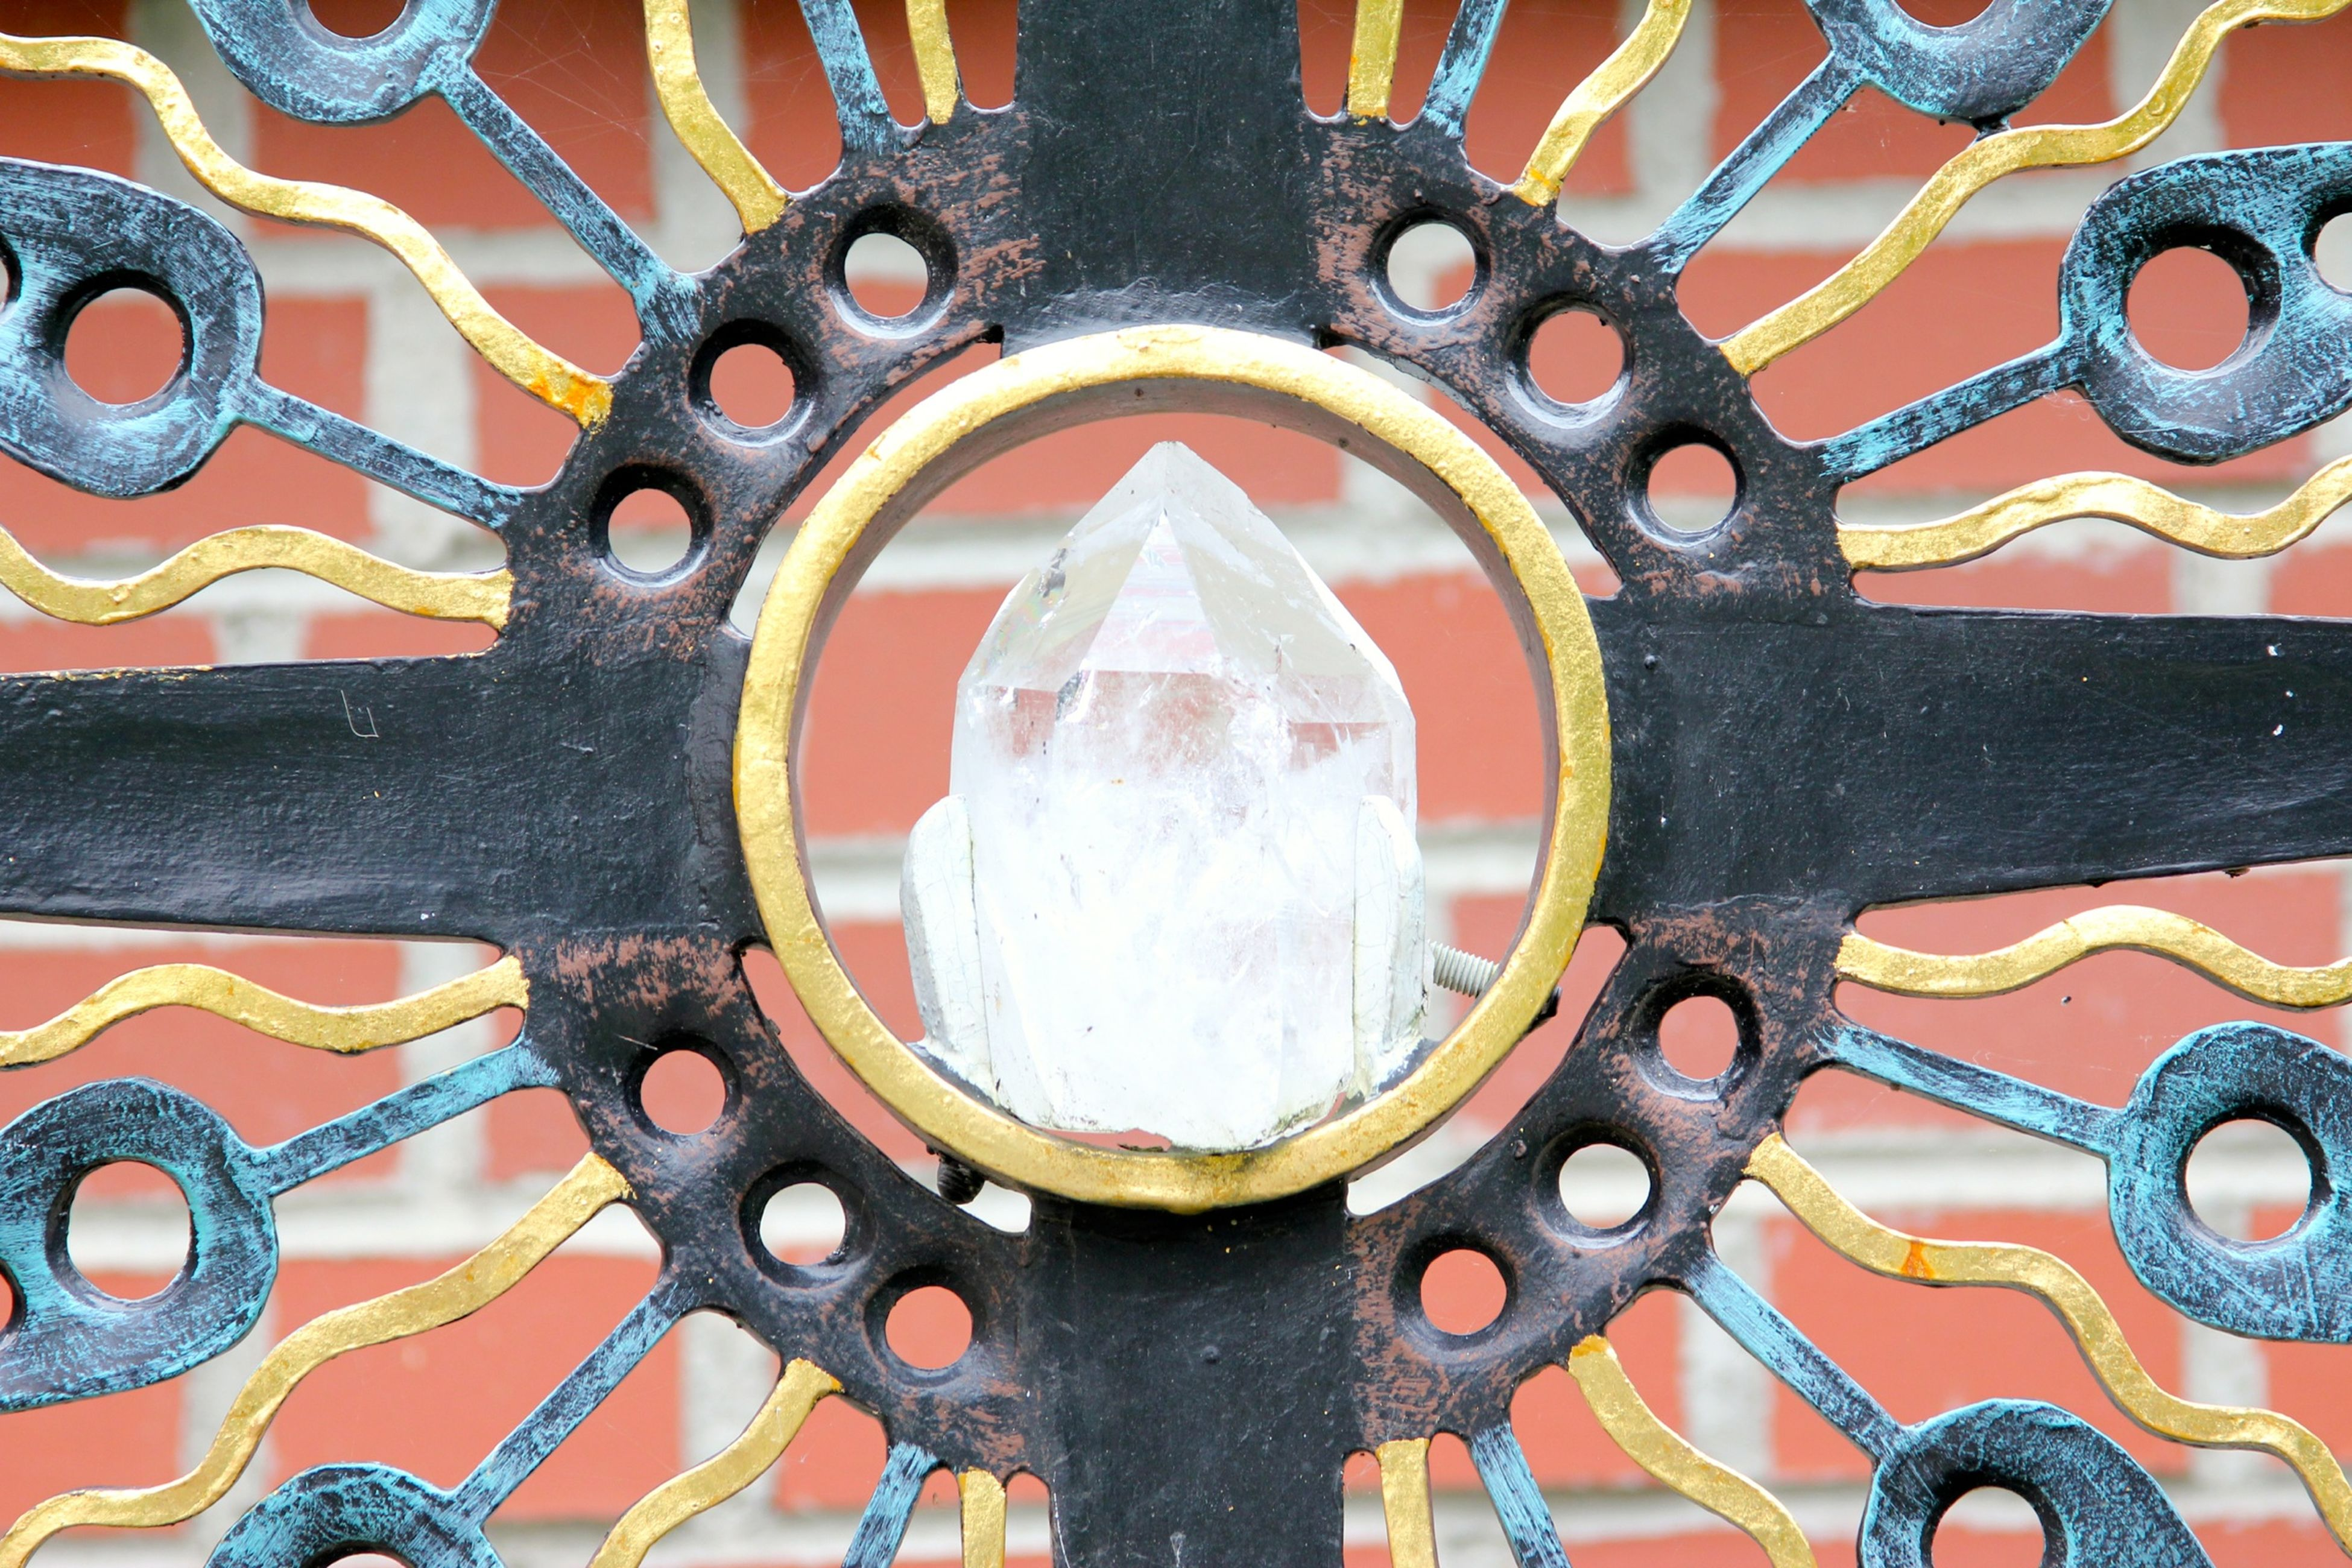 circle, close-up, full frame, day, no people, pattern, outdoors, rusty, multi colored, backgrounds